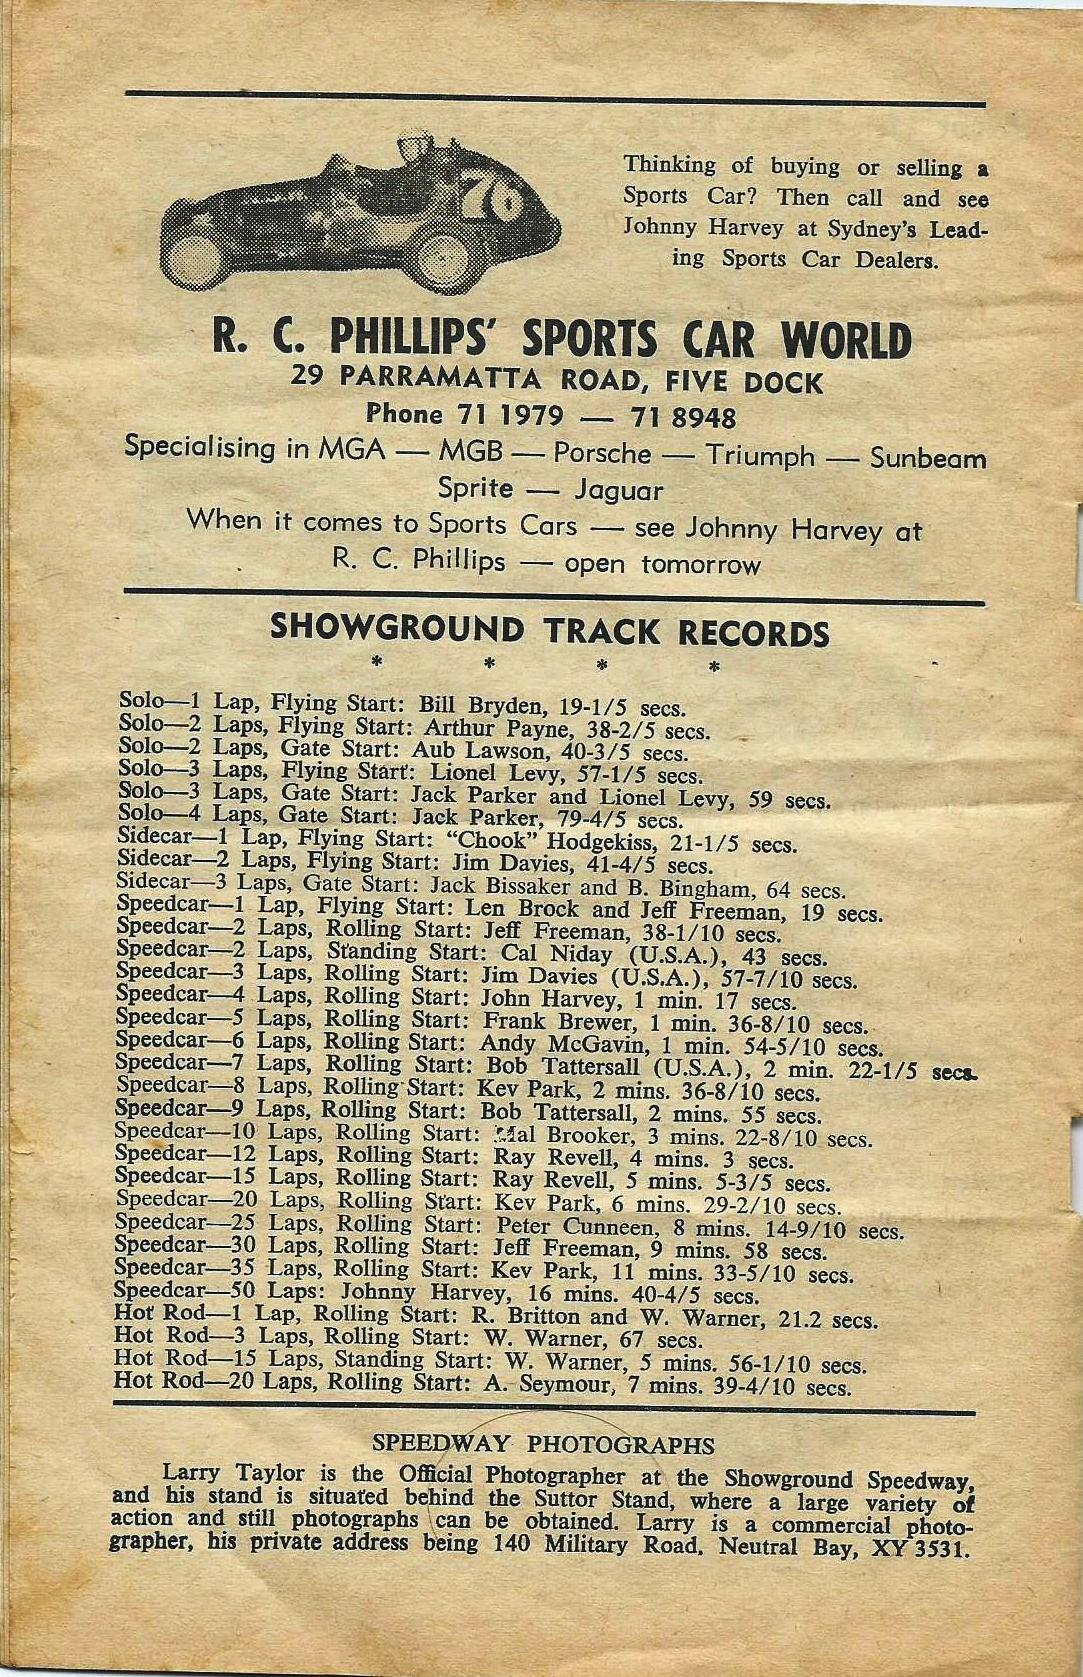 Track records Sydney Showground Speedway Jan , 23 1965